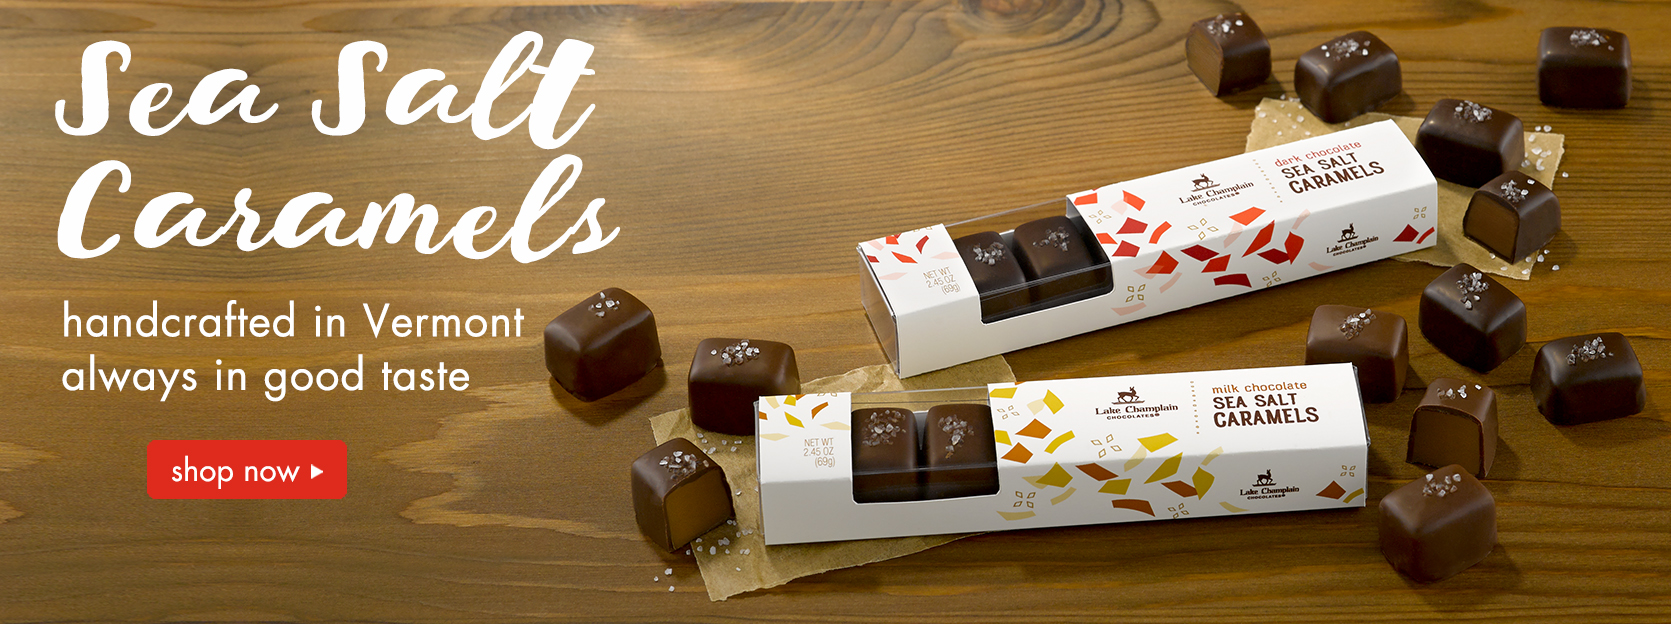 Irresistibly delicious, handcrafted sea salt caramels make a perfect gift for any occasion.